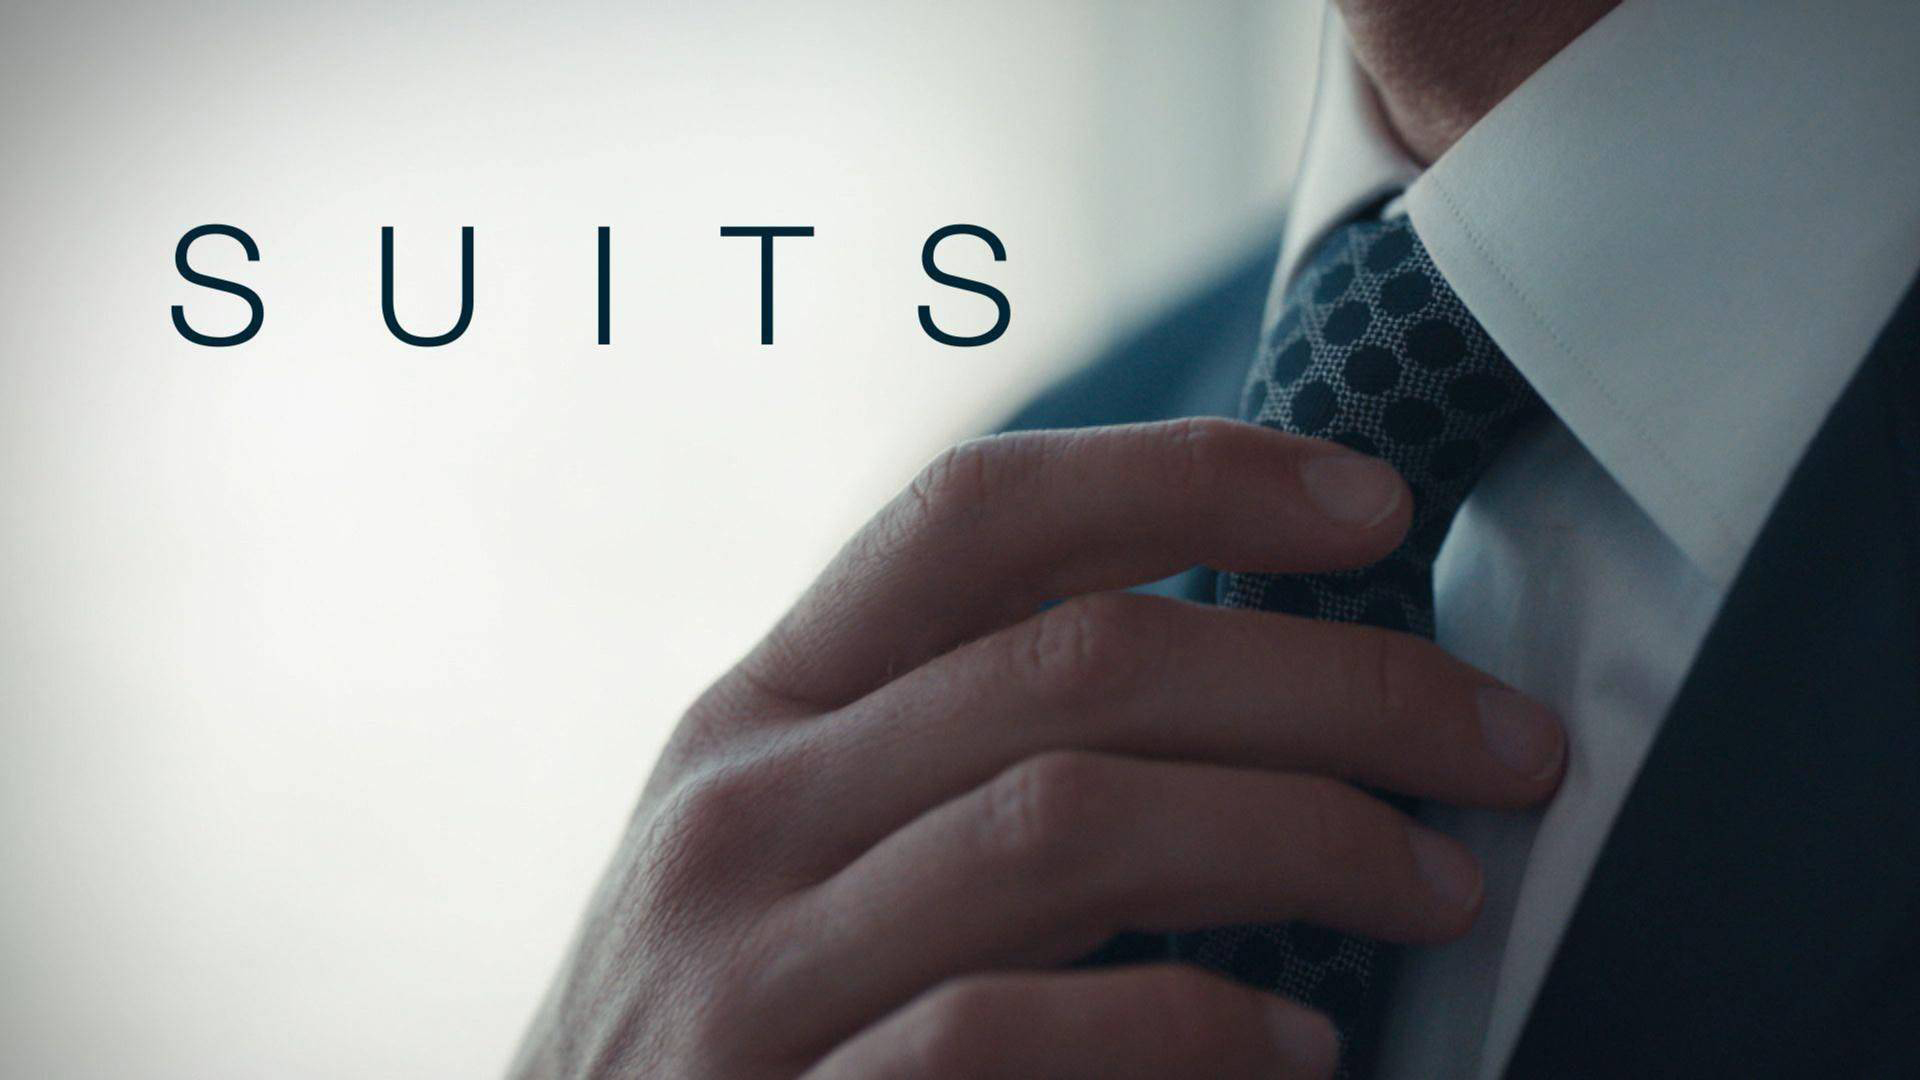 Suits wallpaper 13